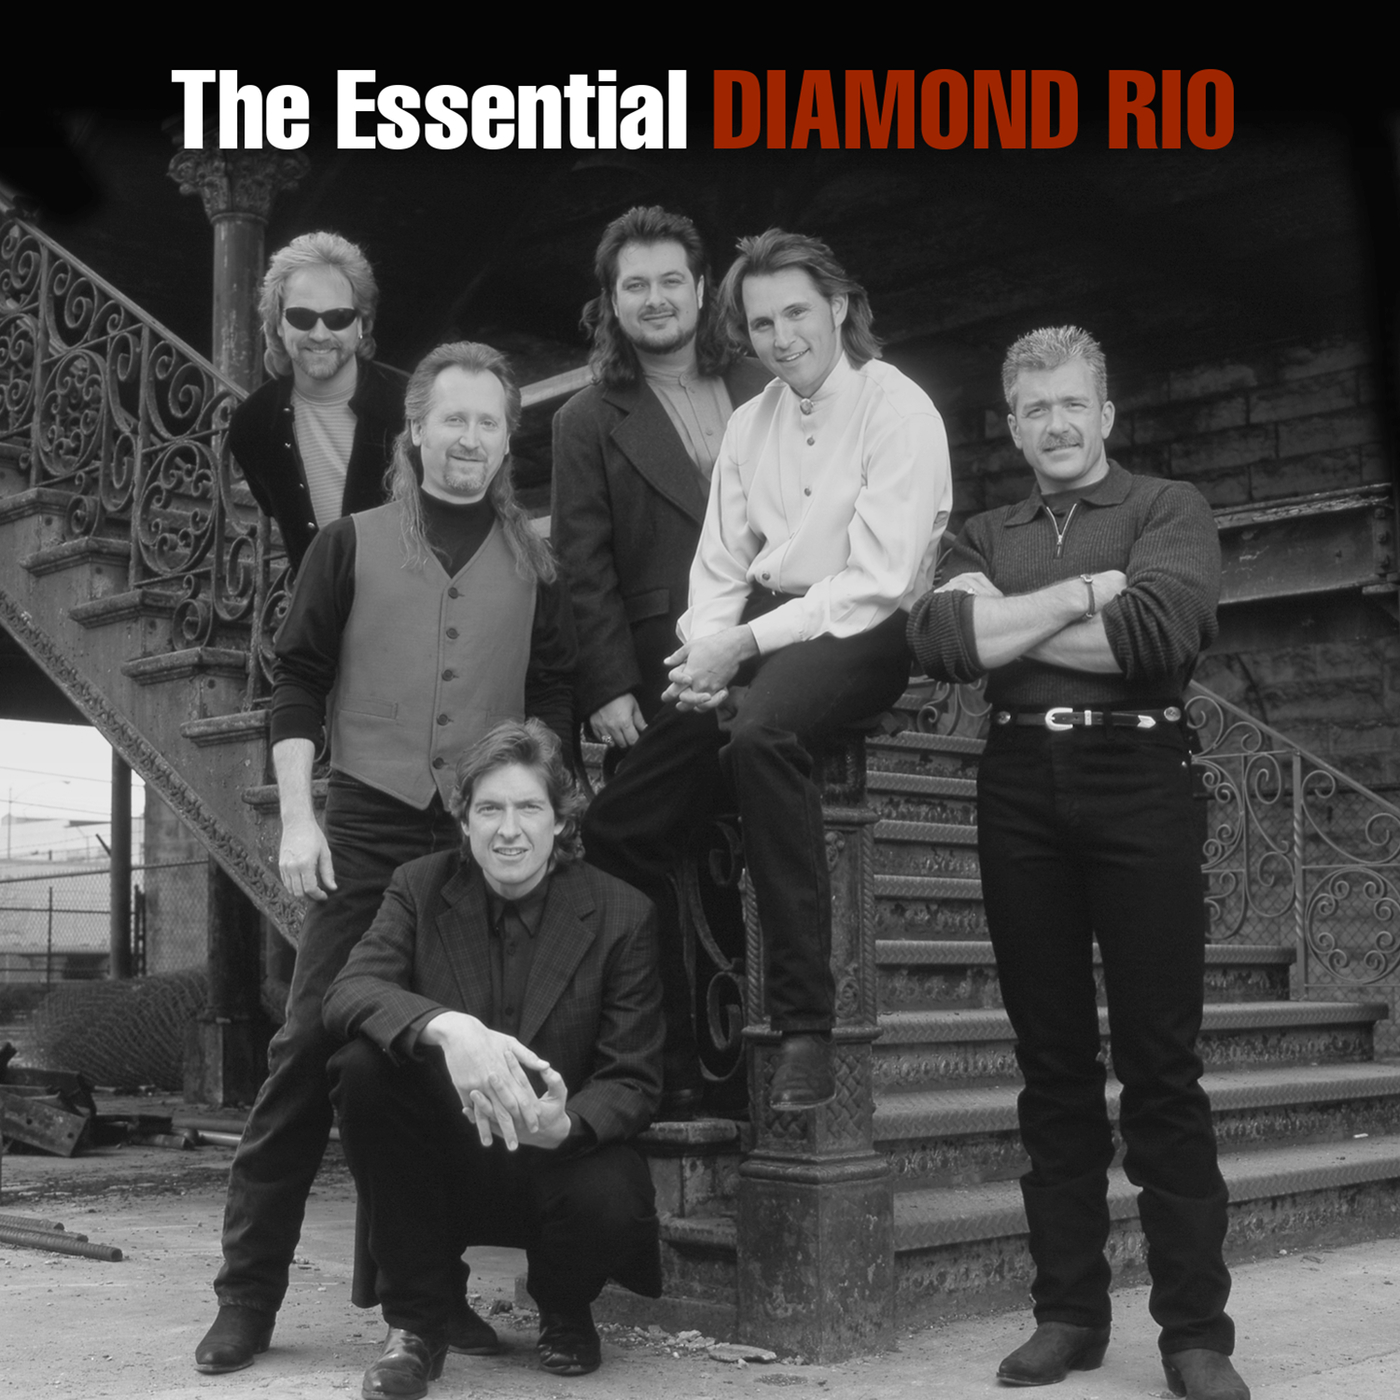 Diamond Rio/Chely Wright